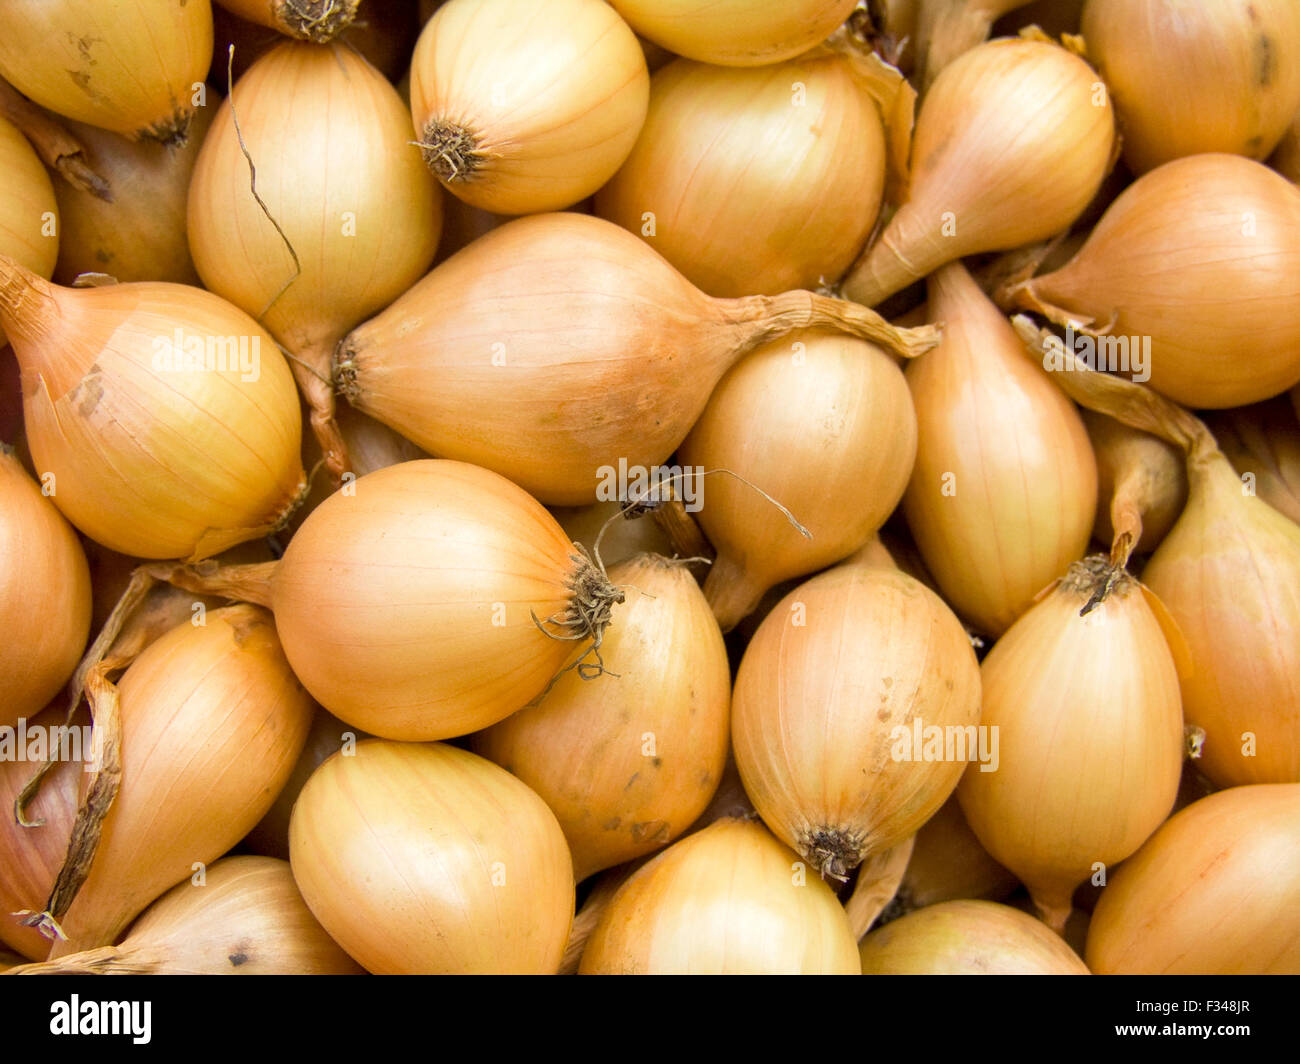 Agricultural background, a pile of beautiful bulb onions - Stock Image